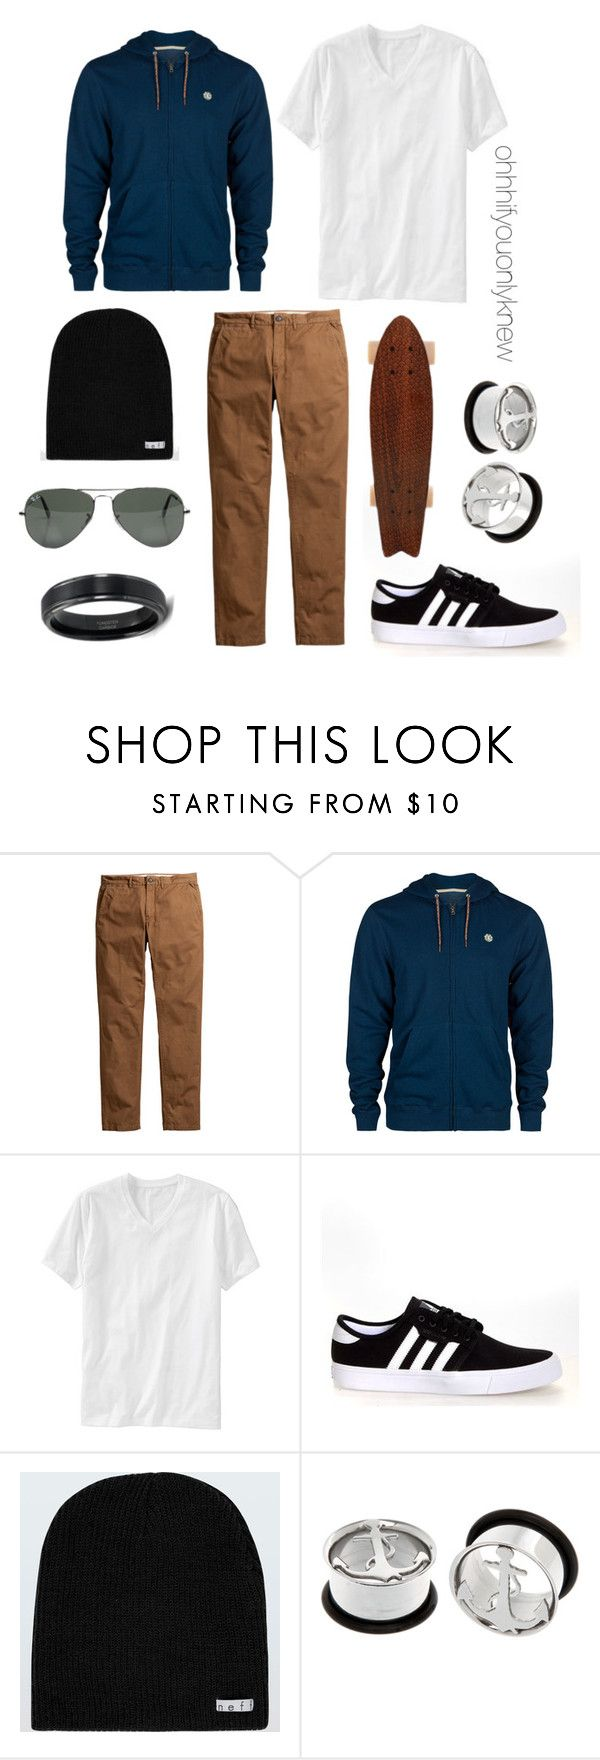 """""""Untitled #232"""" by ohhhifyouonlyknew ❤ liked on Polyvore featuring Element, Old Navy, adidas, Neff, Ray-Ban, MyStyle, menswear, tomboy, mycreations and dyke"""